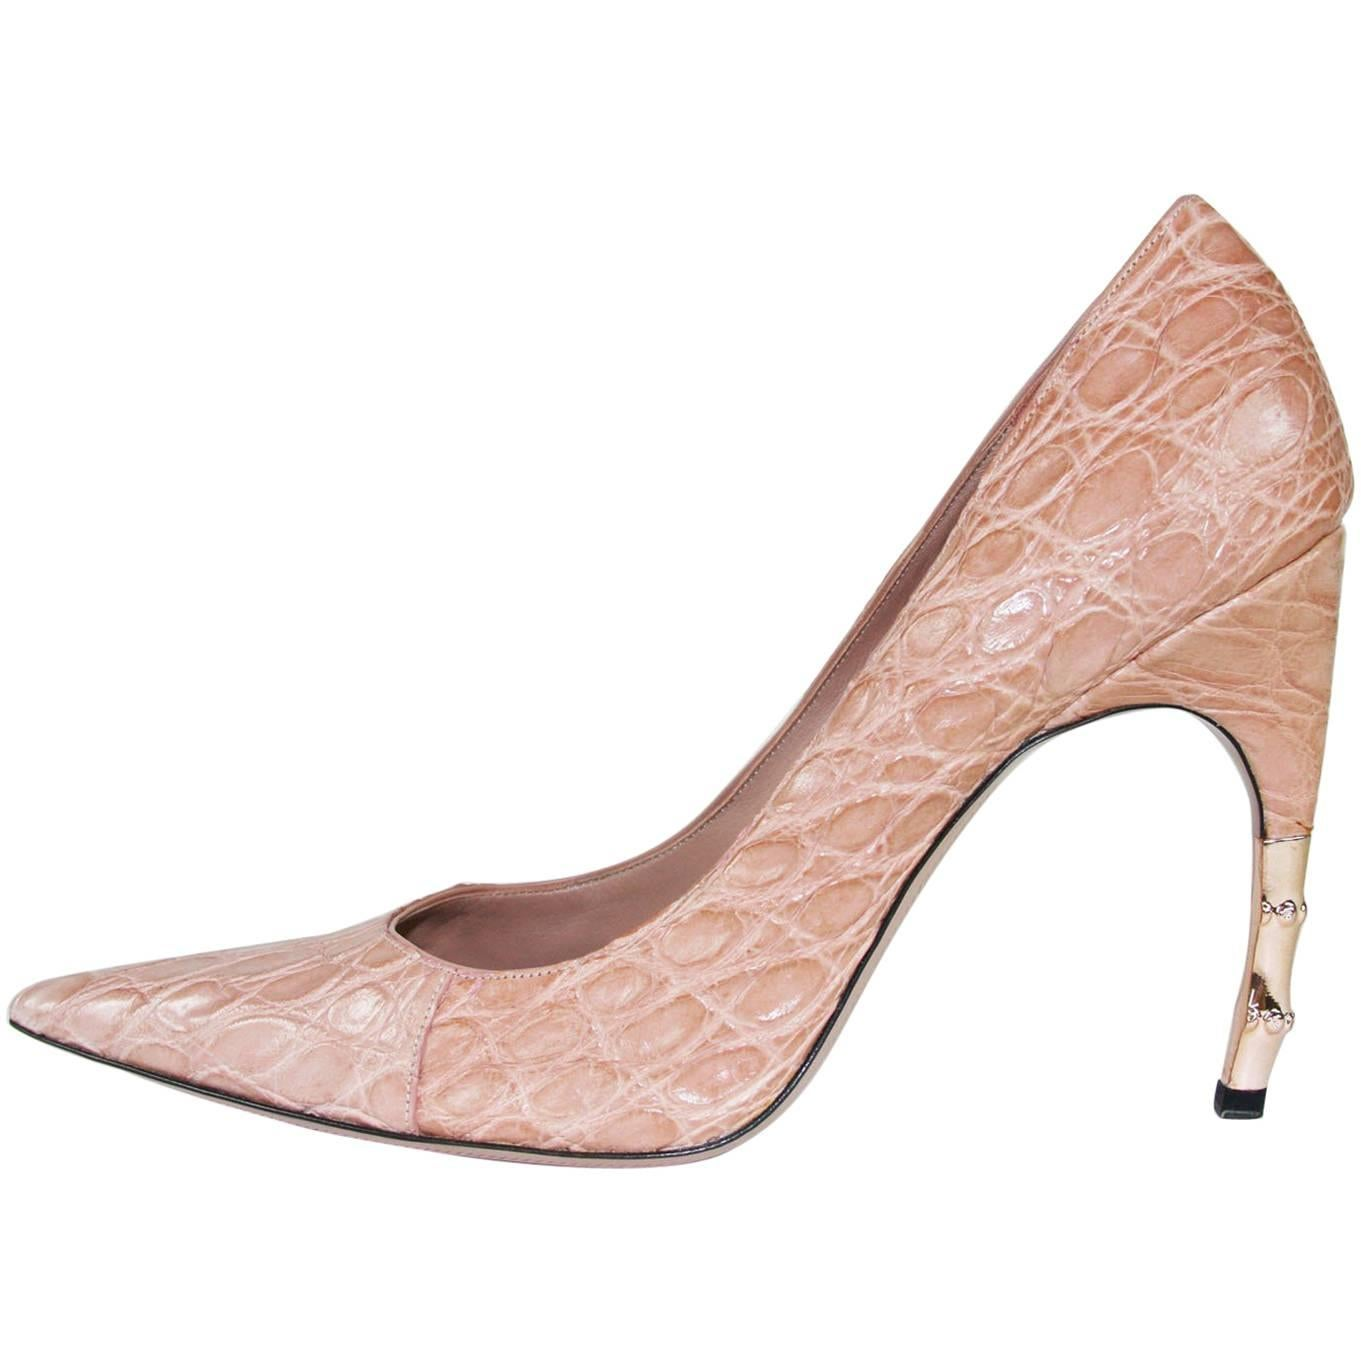 New Tom Ford for Gucci 2004 Collection Crocodile Nude Bamboo Heel Shoes 40 C